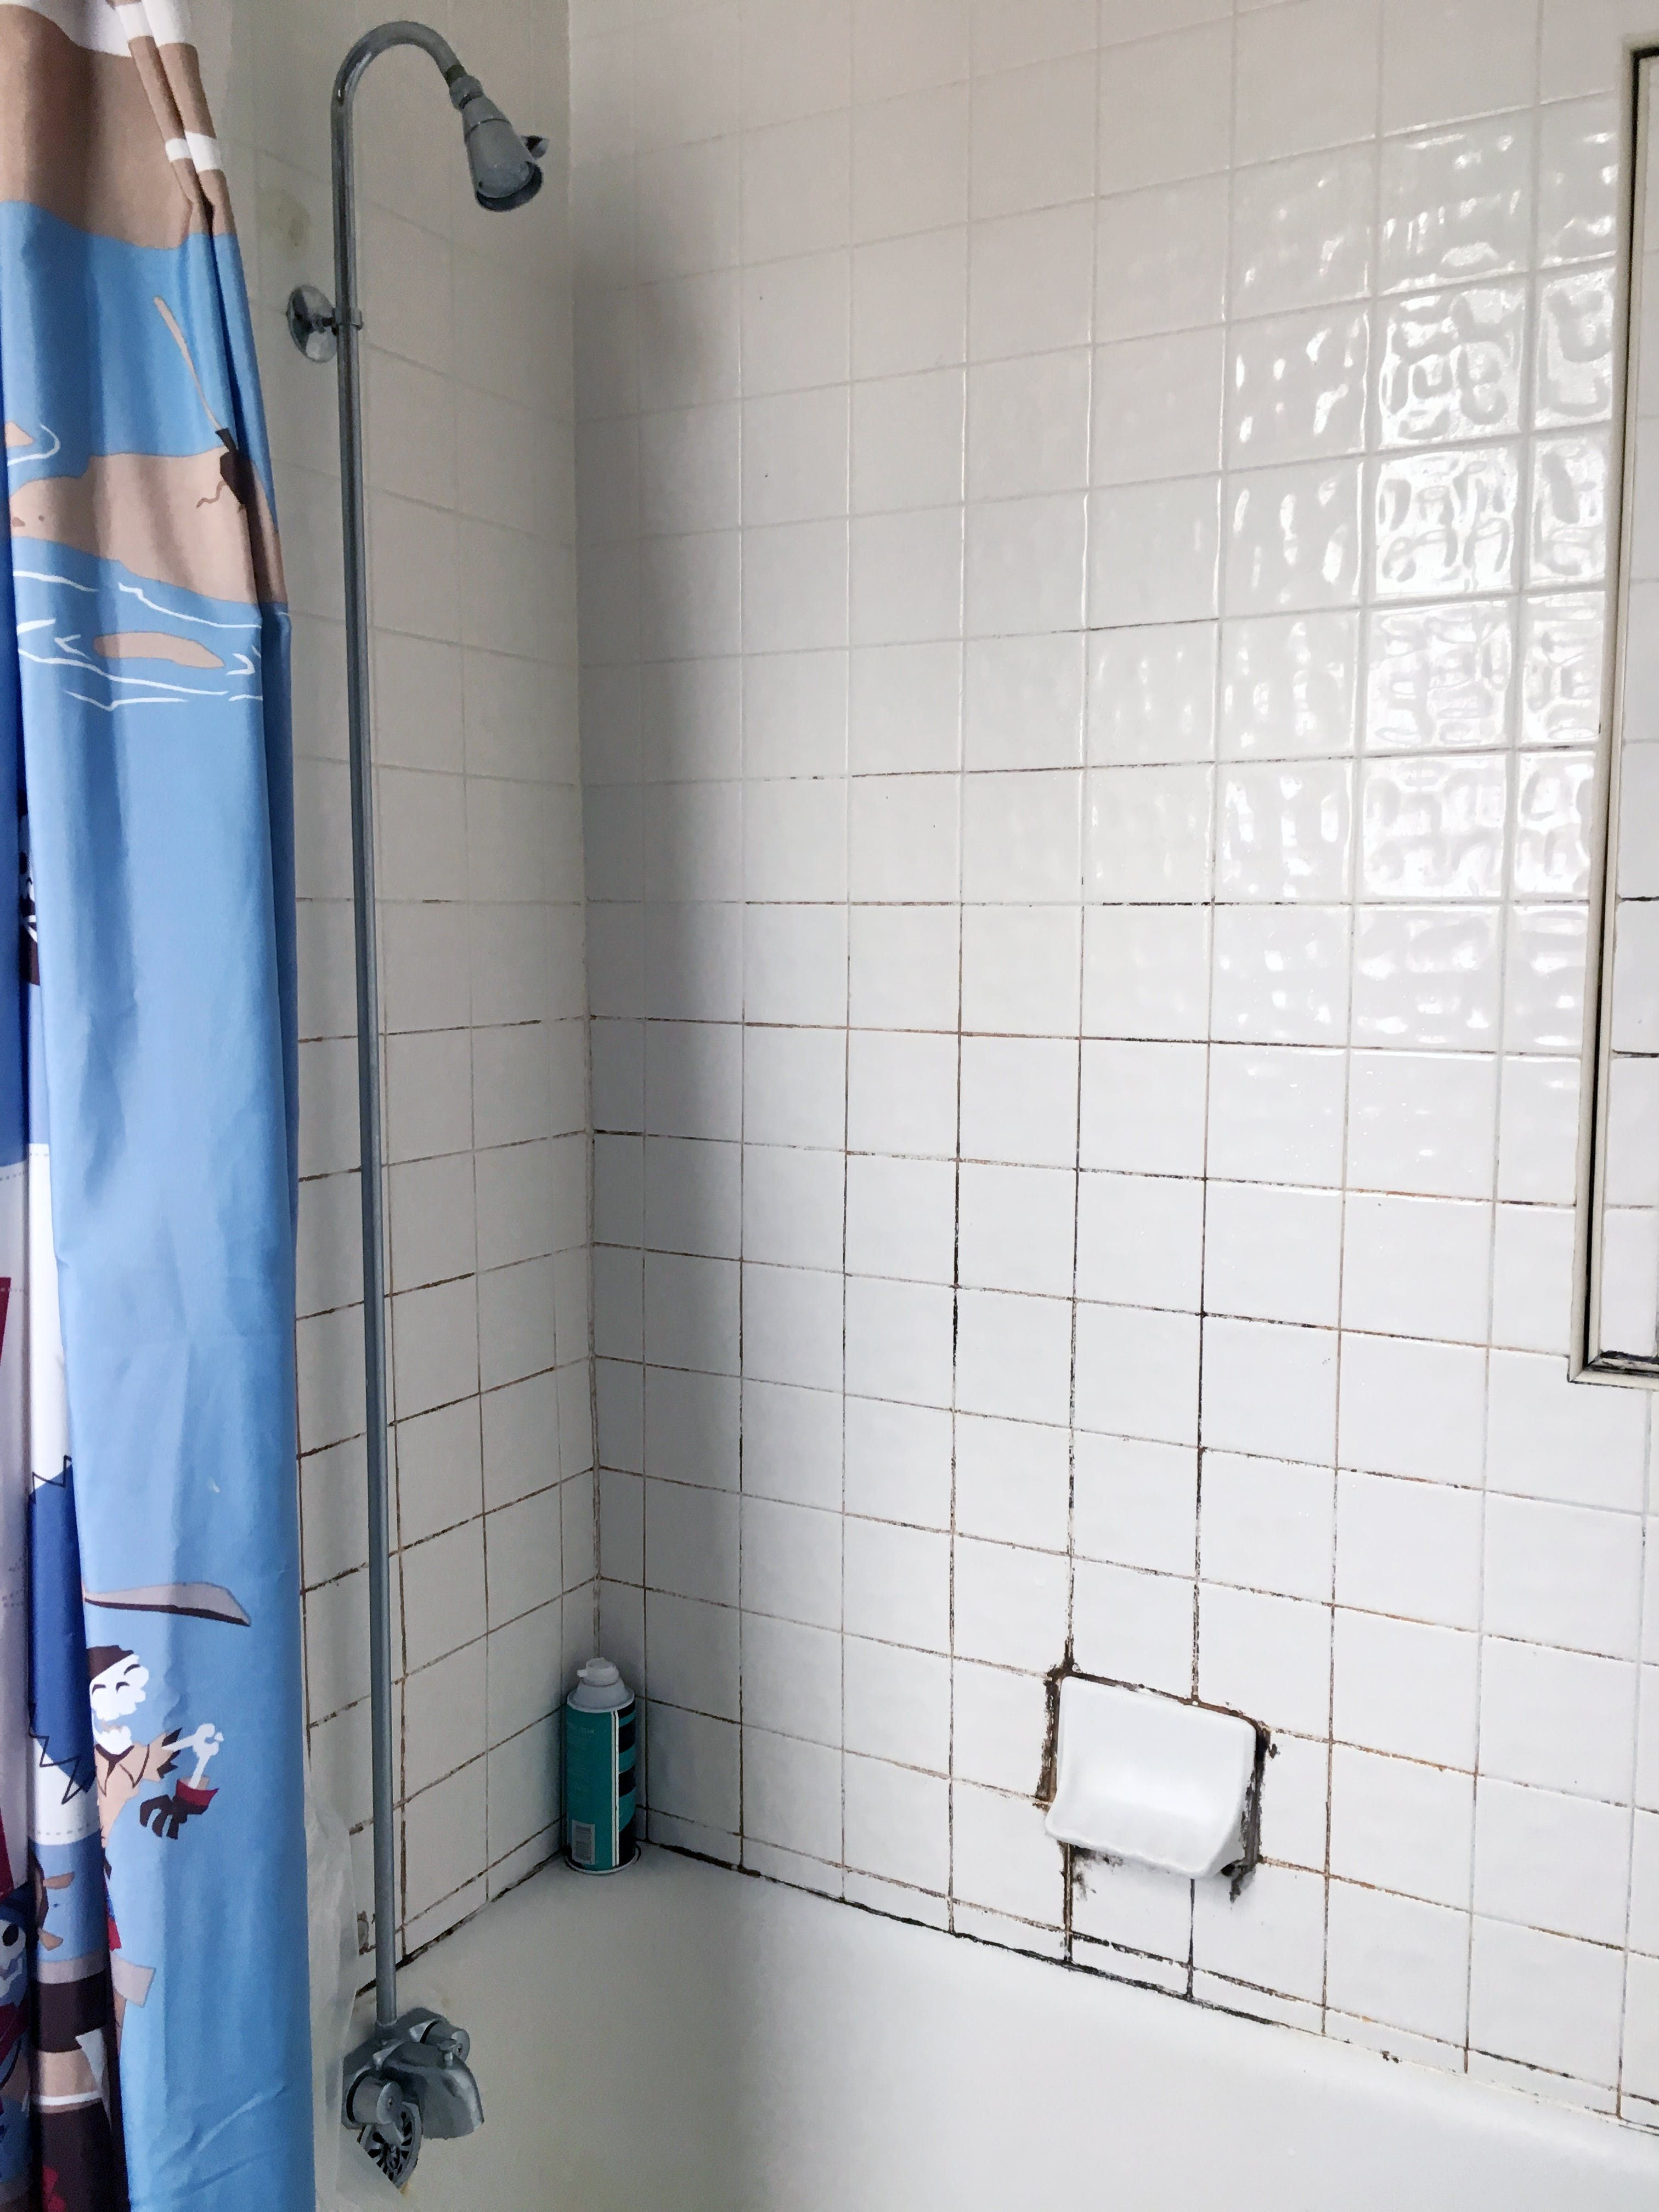 Best Grout Cleaner Options for Rusty Moldy Shower Tile | Pinterest ...